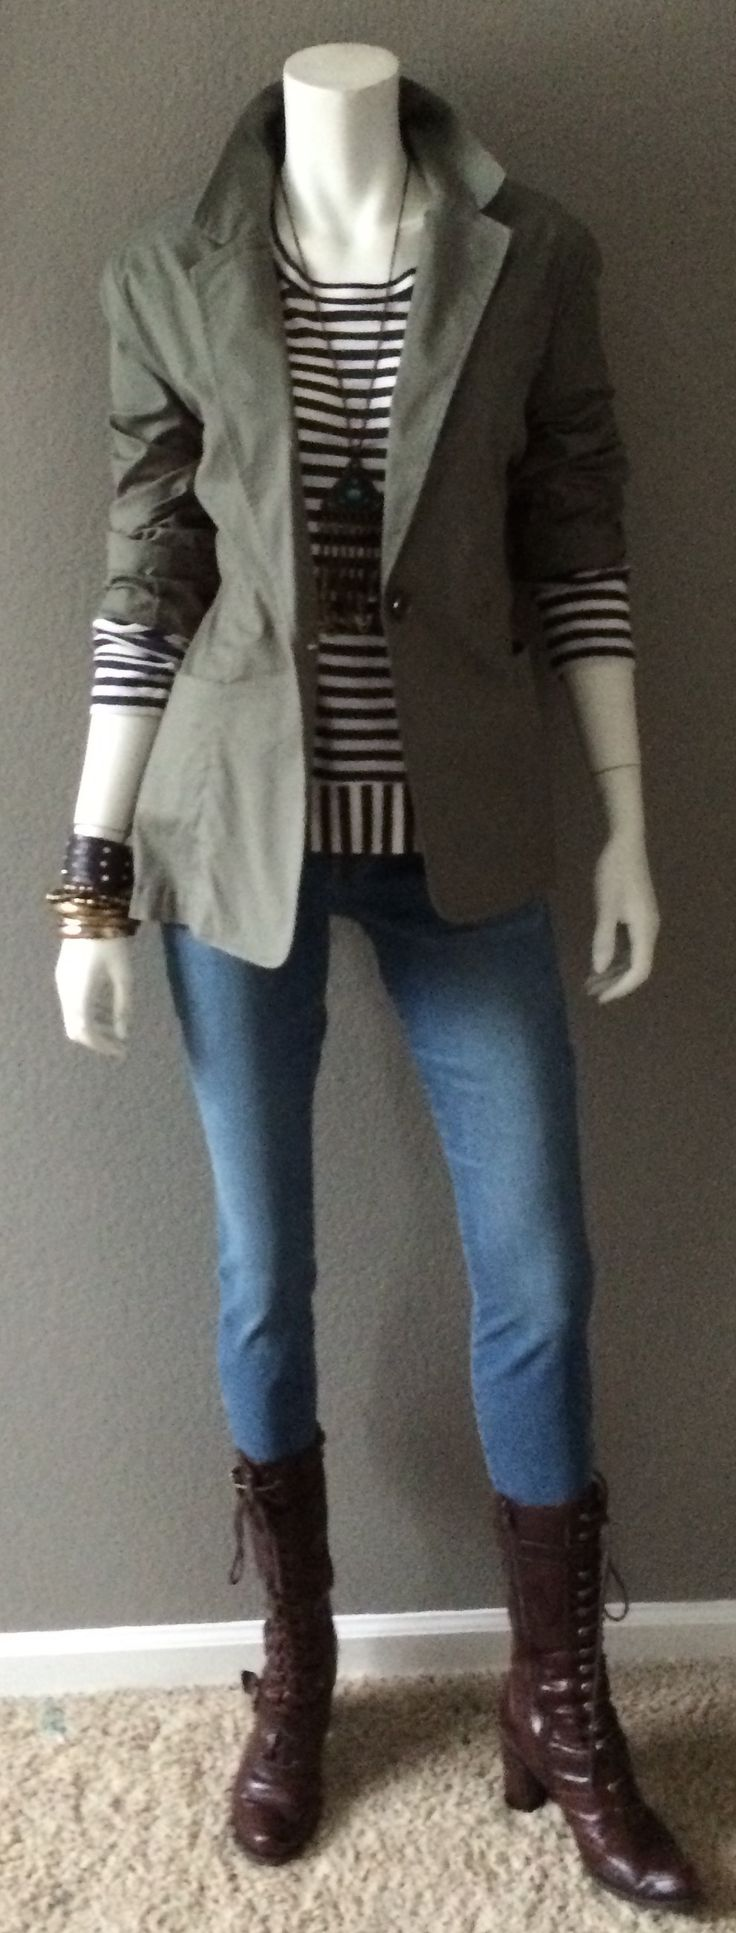 Daily Look: CAbi Spring '15 Olive Jacket, Bengal Stripe Tee, and La Jolla Cropped Skinny Jean with a rad boho necklace, leather bracelets and military boots.  Pop the collar for maximum cool.  #springfashion #cabiclothing